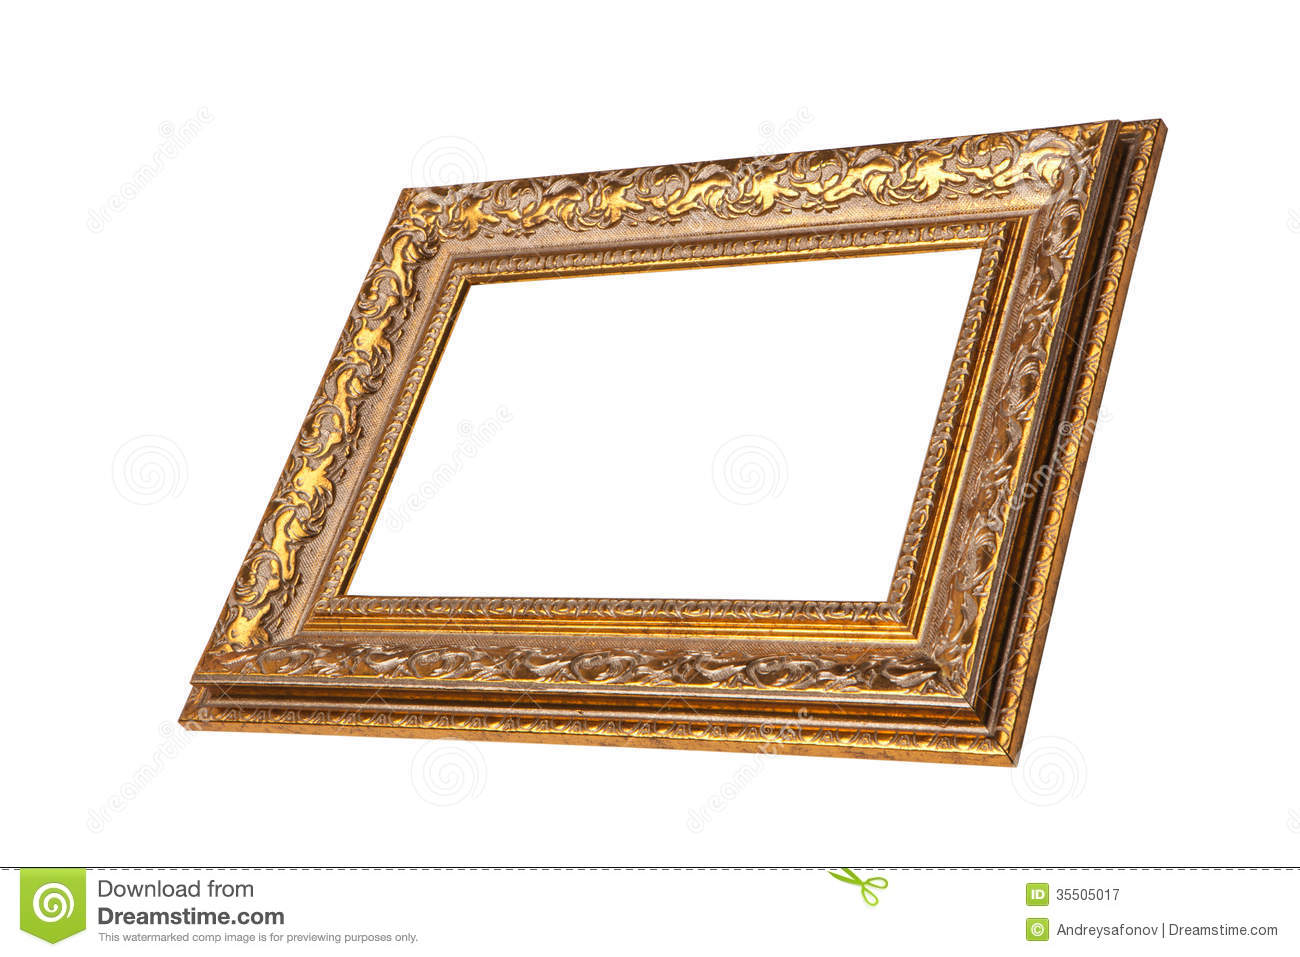 c04c1608a3e3 Vintage Golden Frame With Blank Space. Stock Image - Image of ...